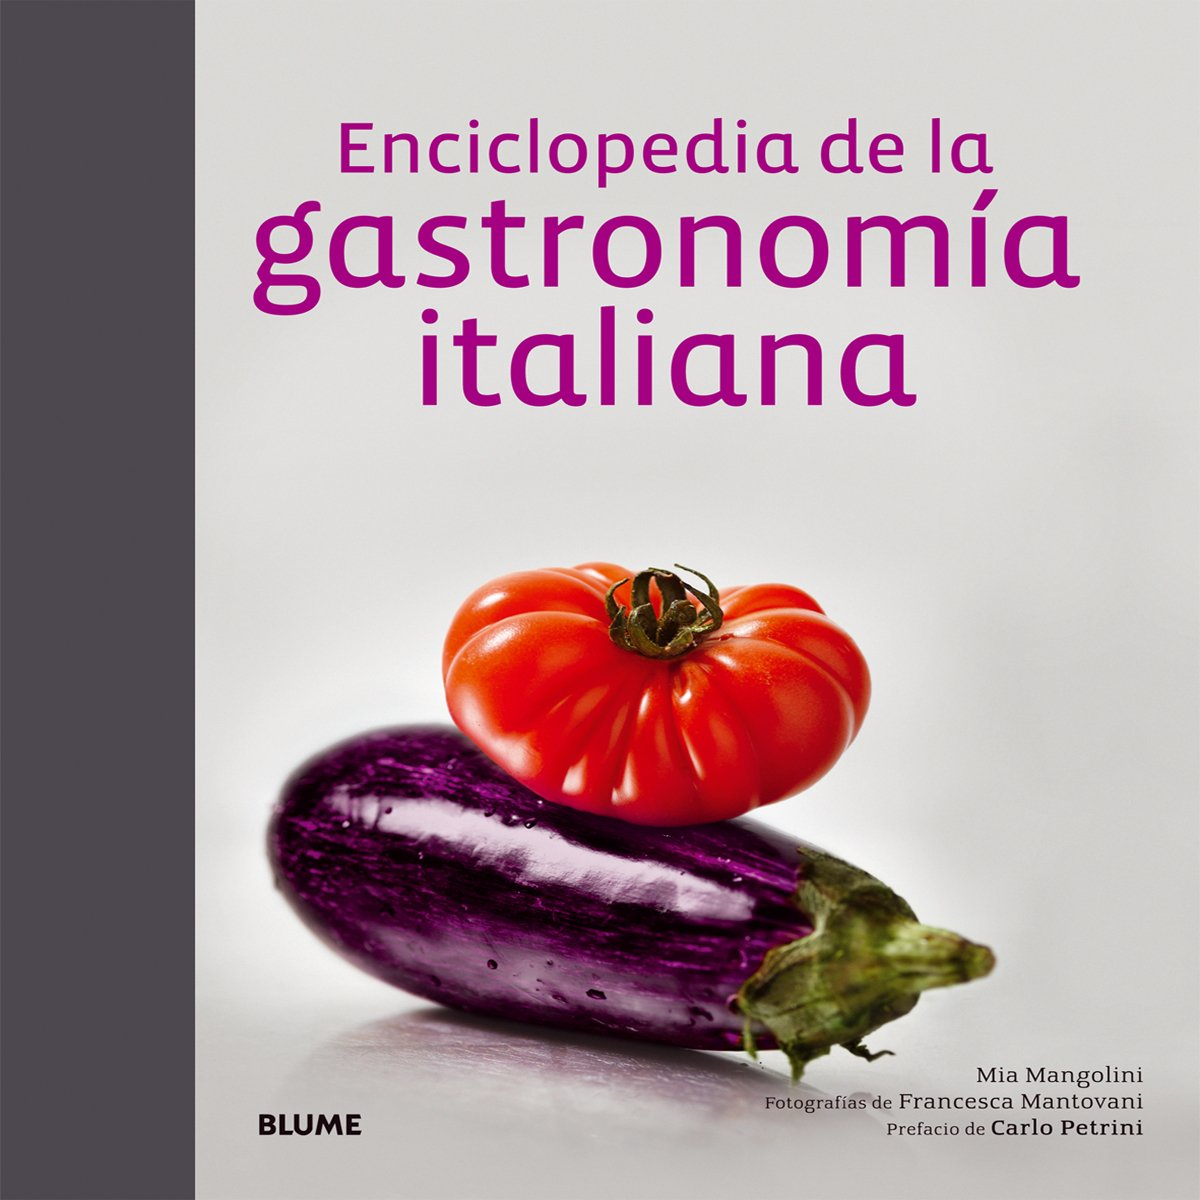 ENCICLOPEDIA DE LA GASTRONOMIA ITALIANA / PD.: Varios: 9788416138098: Amazon.com: Books